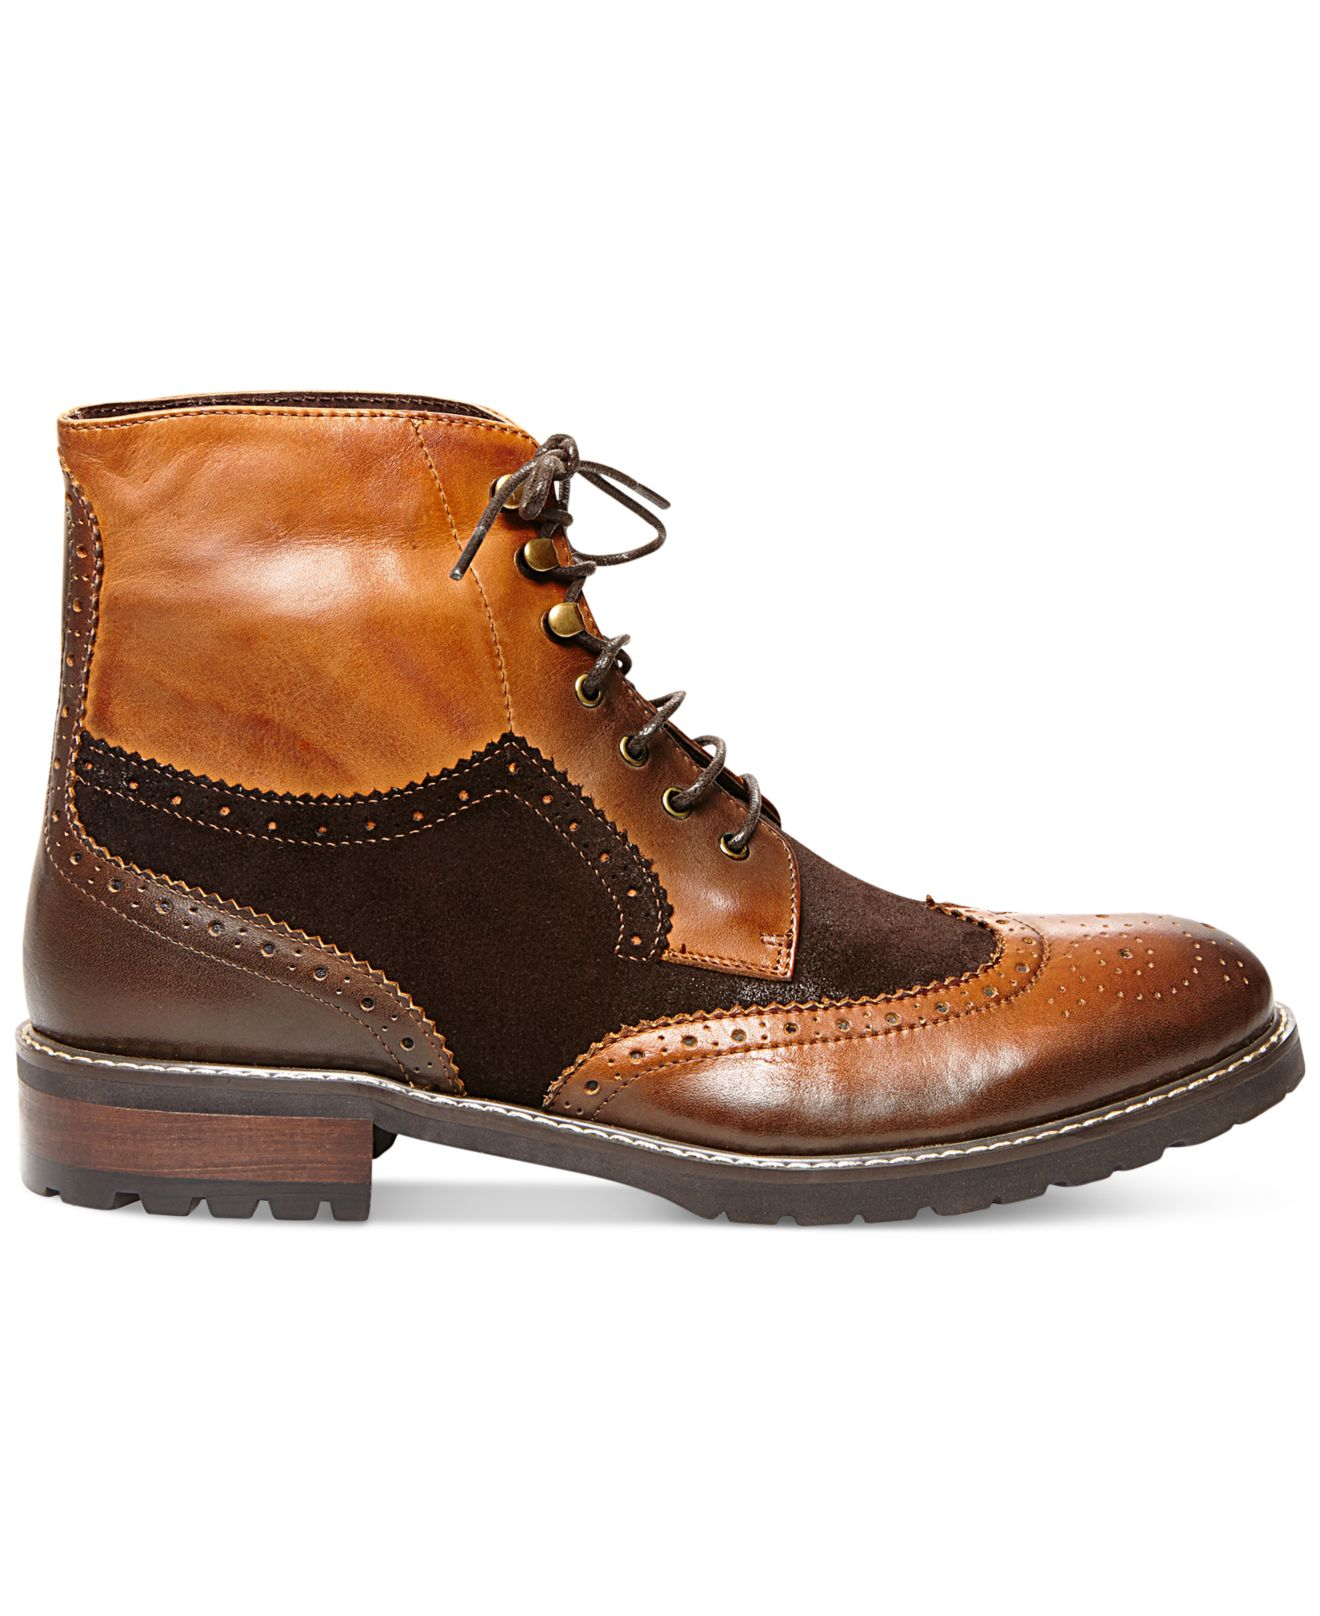 steve madden occupie boots in brown for brown